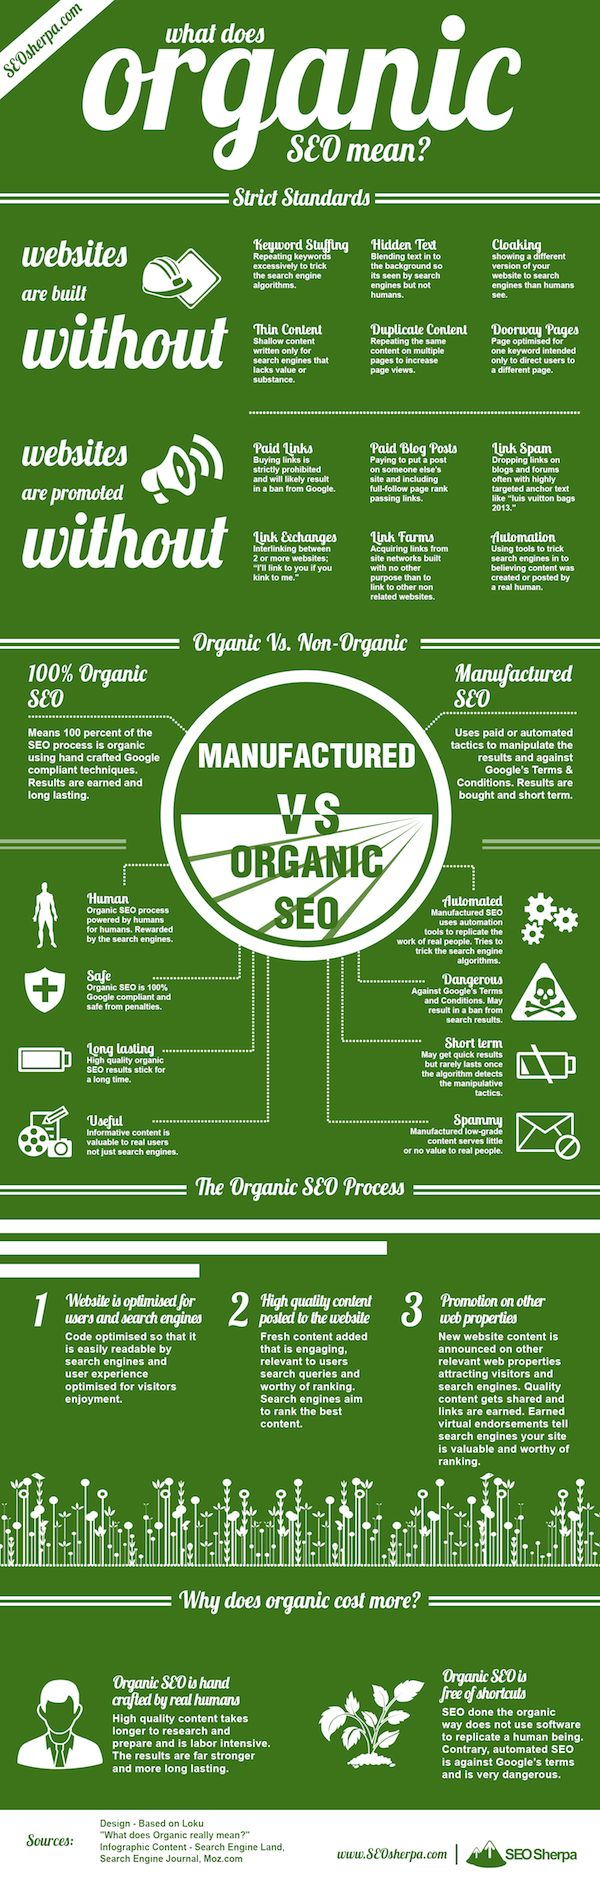 What Does Organic SEO Really Mean?   Ever wondered the difference between cheap, automated, spammy SEO that puts your website in danger and high quality organic SEO that delivers long lasting results? Well this explains all...